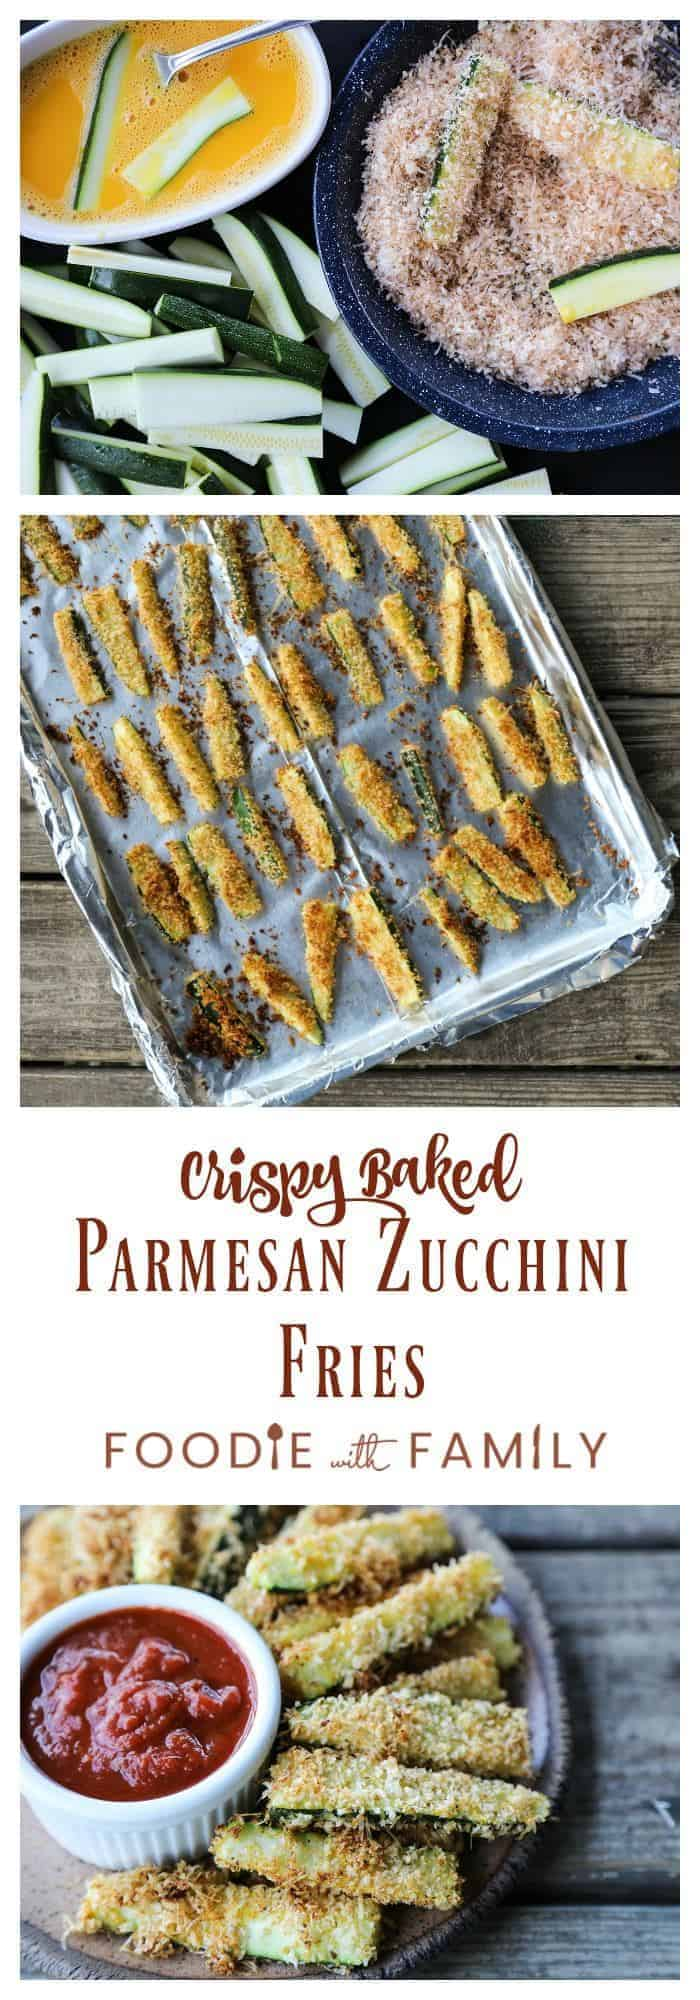 recipe: garlic parmesan zucchini fries [31]